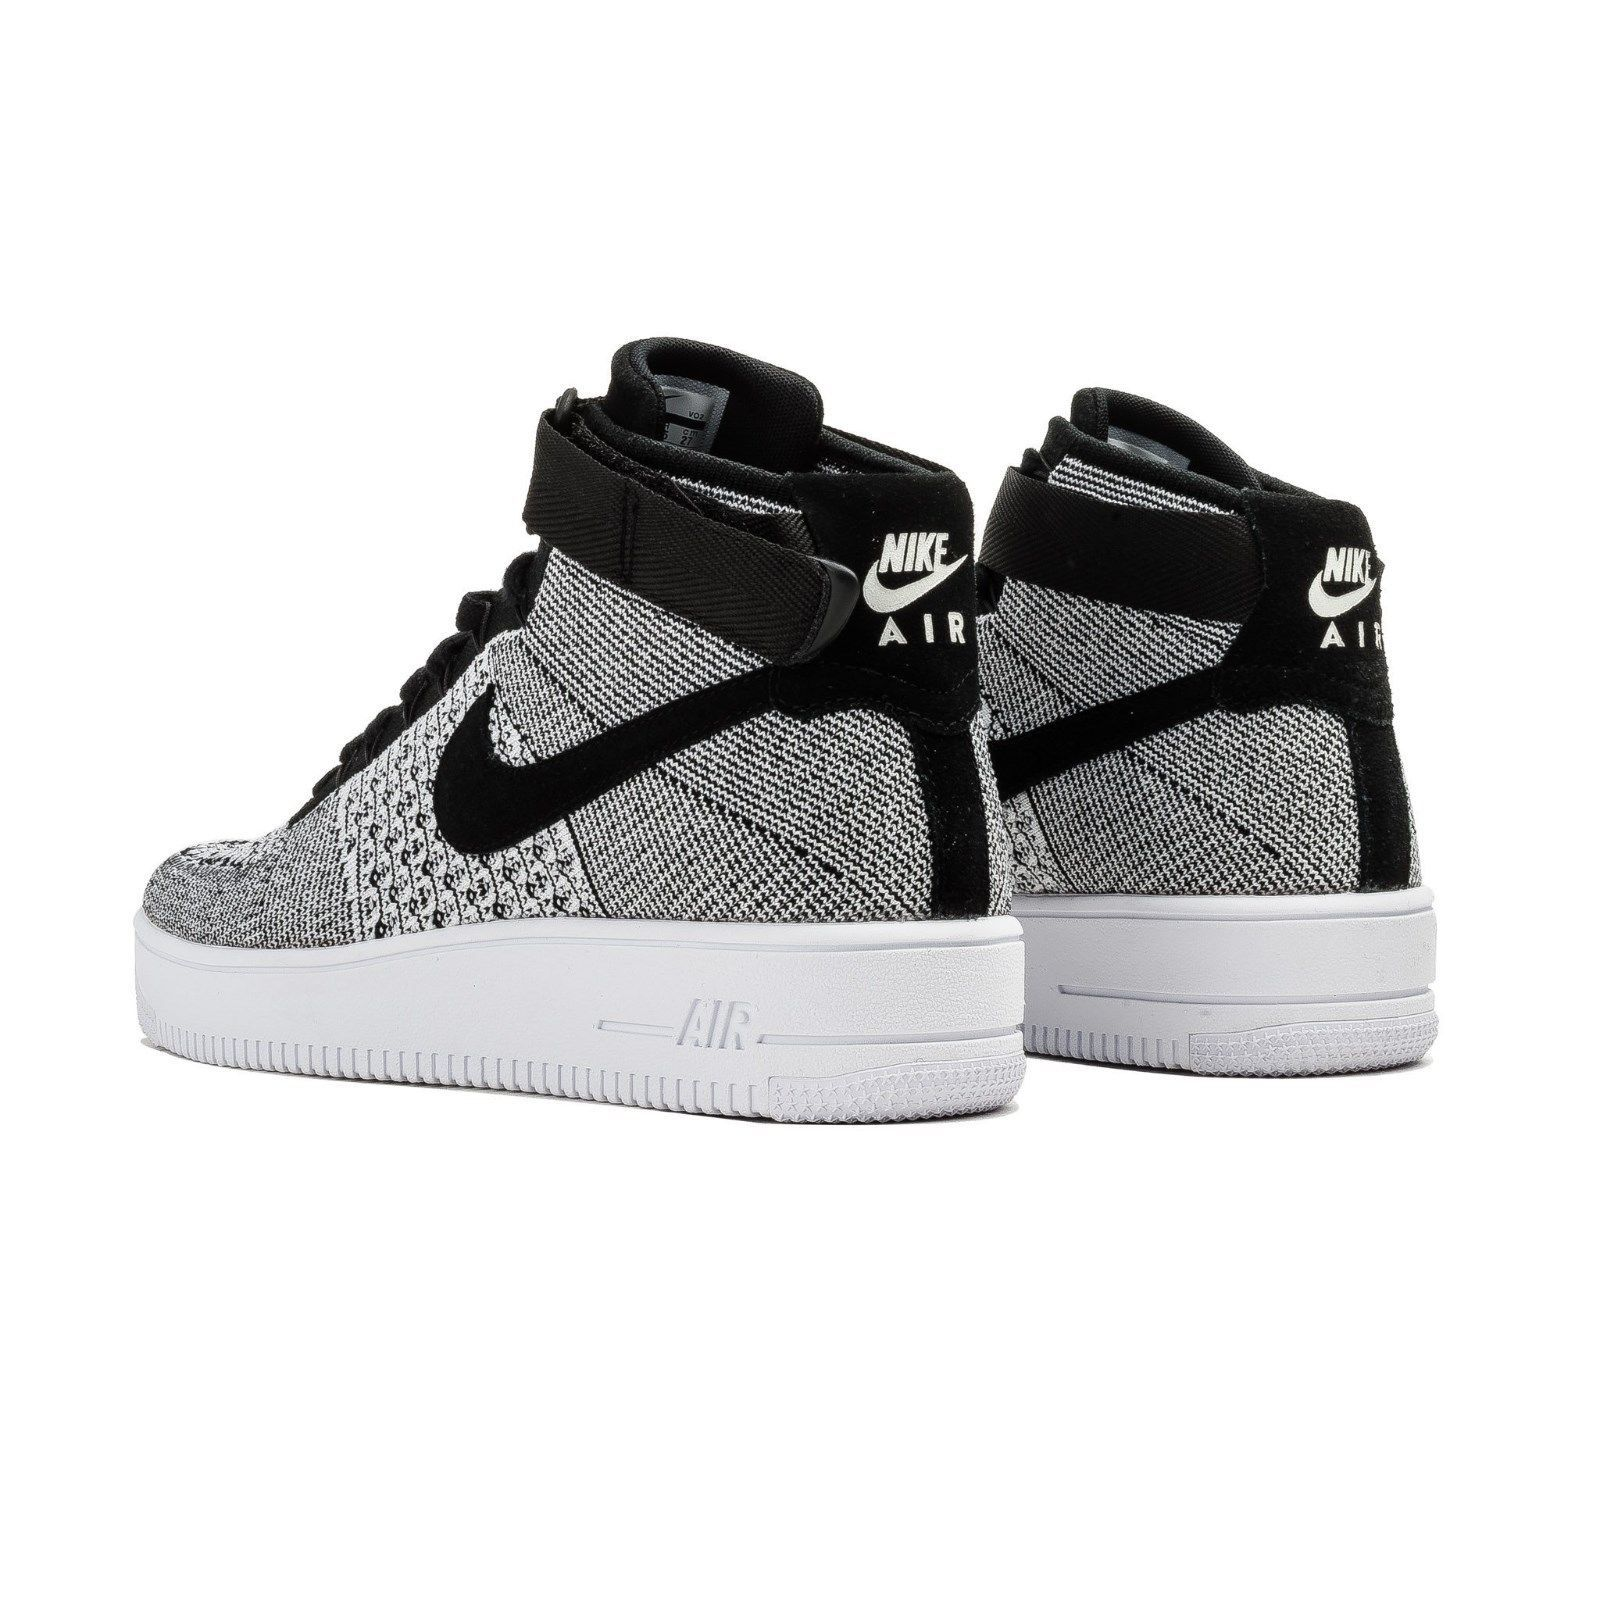 8ce9d283e99 ... 817420 005 · Nike Men s AF1 Ultra Flyknit Mid Shoes Size 7 to 14 us  817420 ...